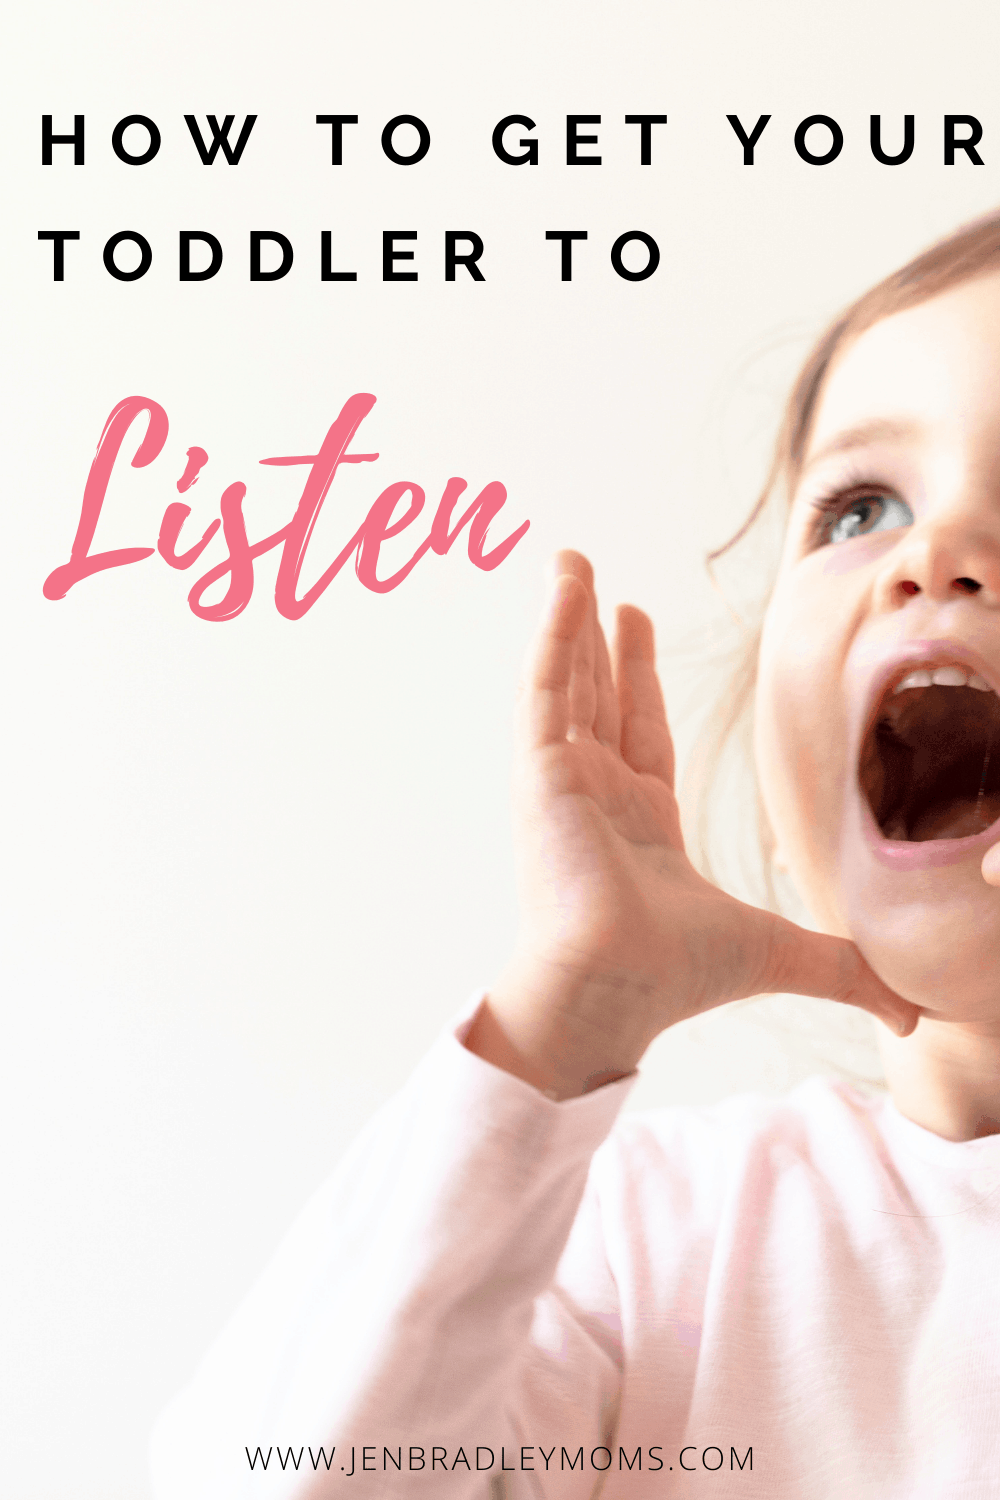 How to Get Your Toddler to Listen - 10 Simple Tips You Need